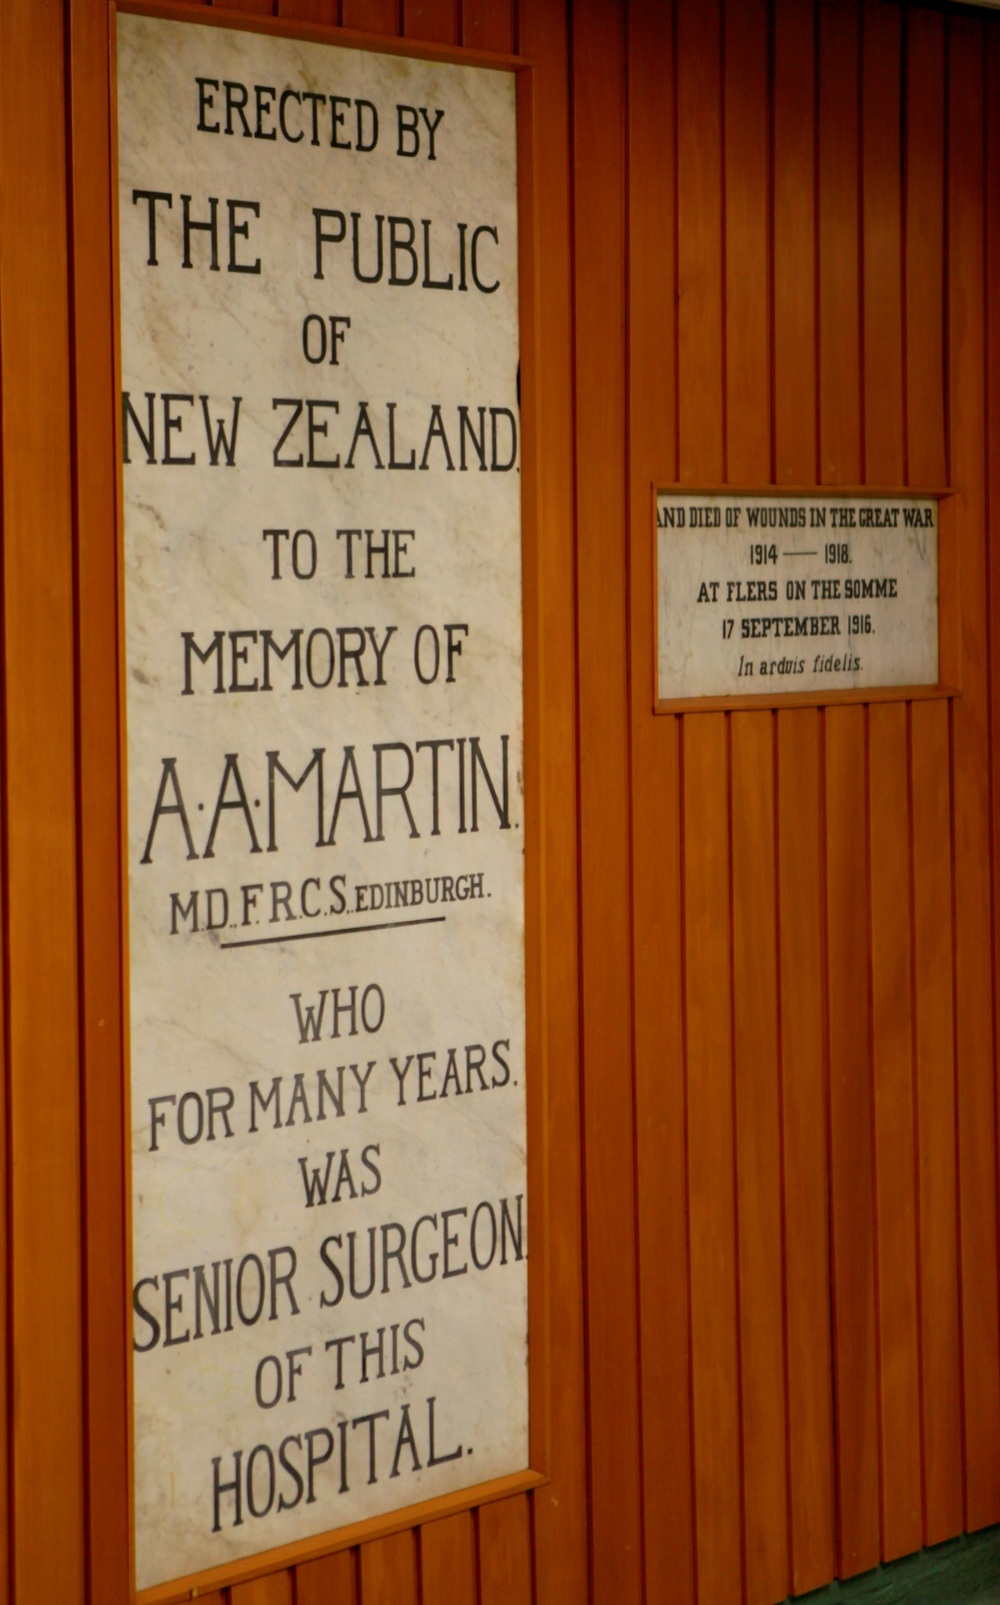 Figure 5: The memorial to Dr A A Martin located in the Palmerston North Hospital. Reference: Photograph by Evan Greensides, Ian Matheson City Archives, 2015